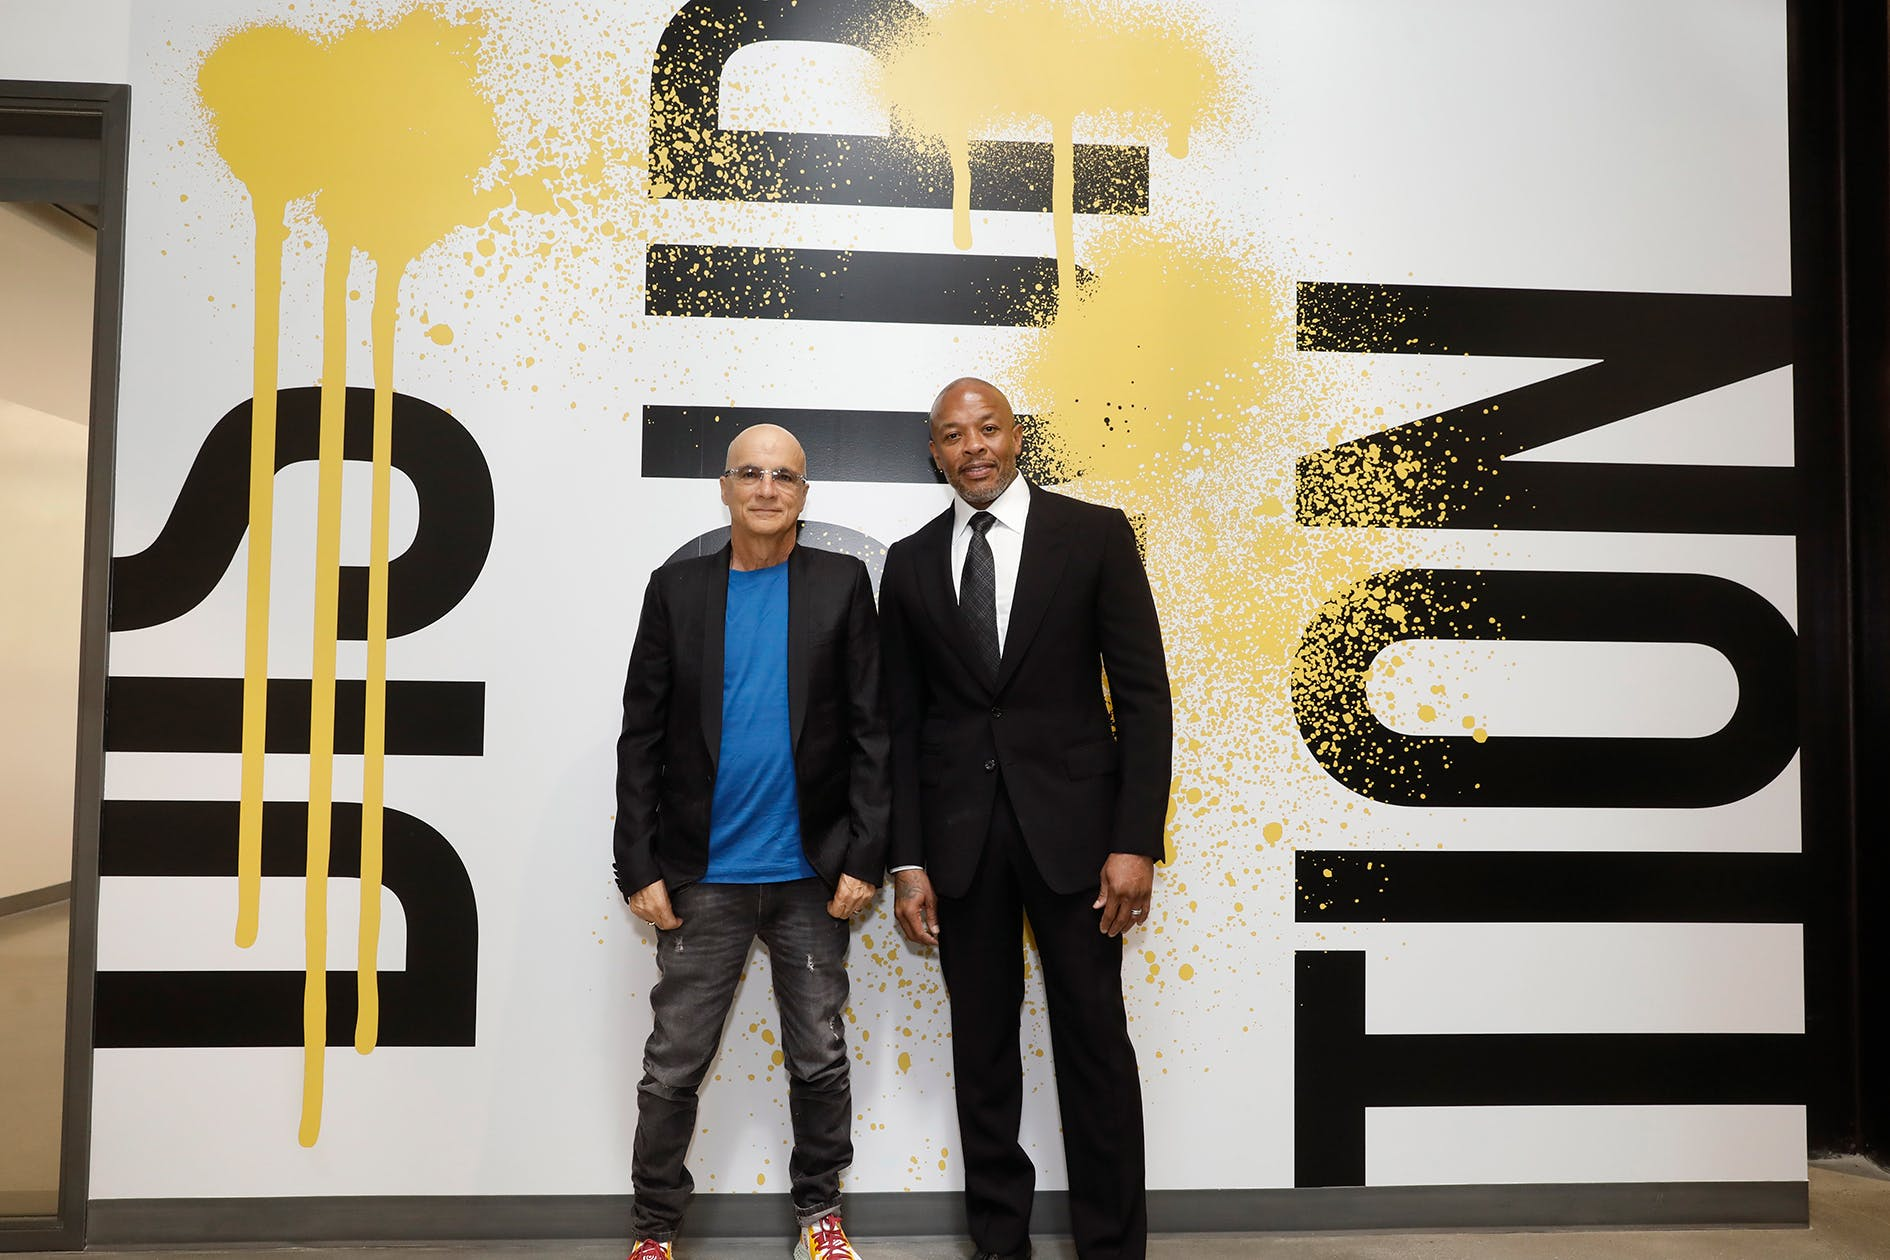 Two men standing in front of paint splattered wall